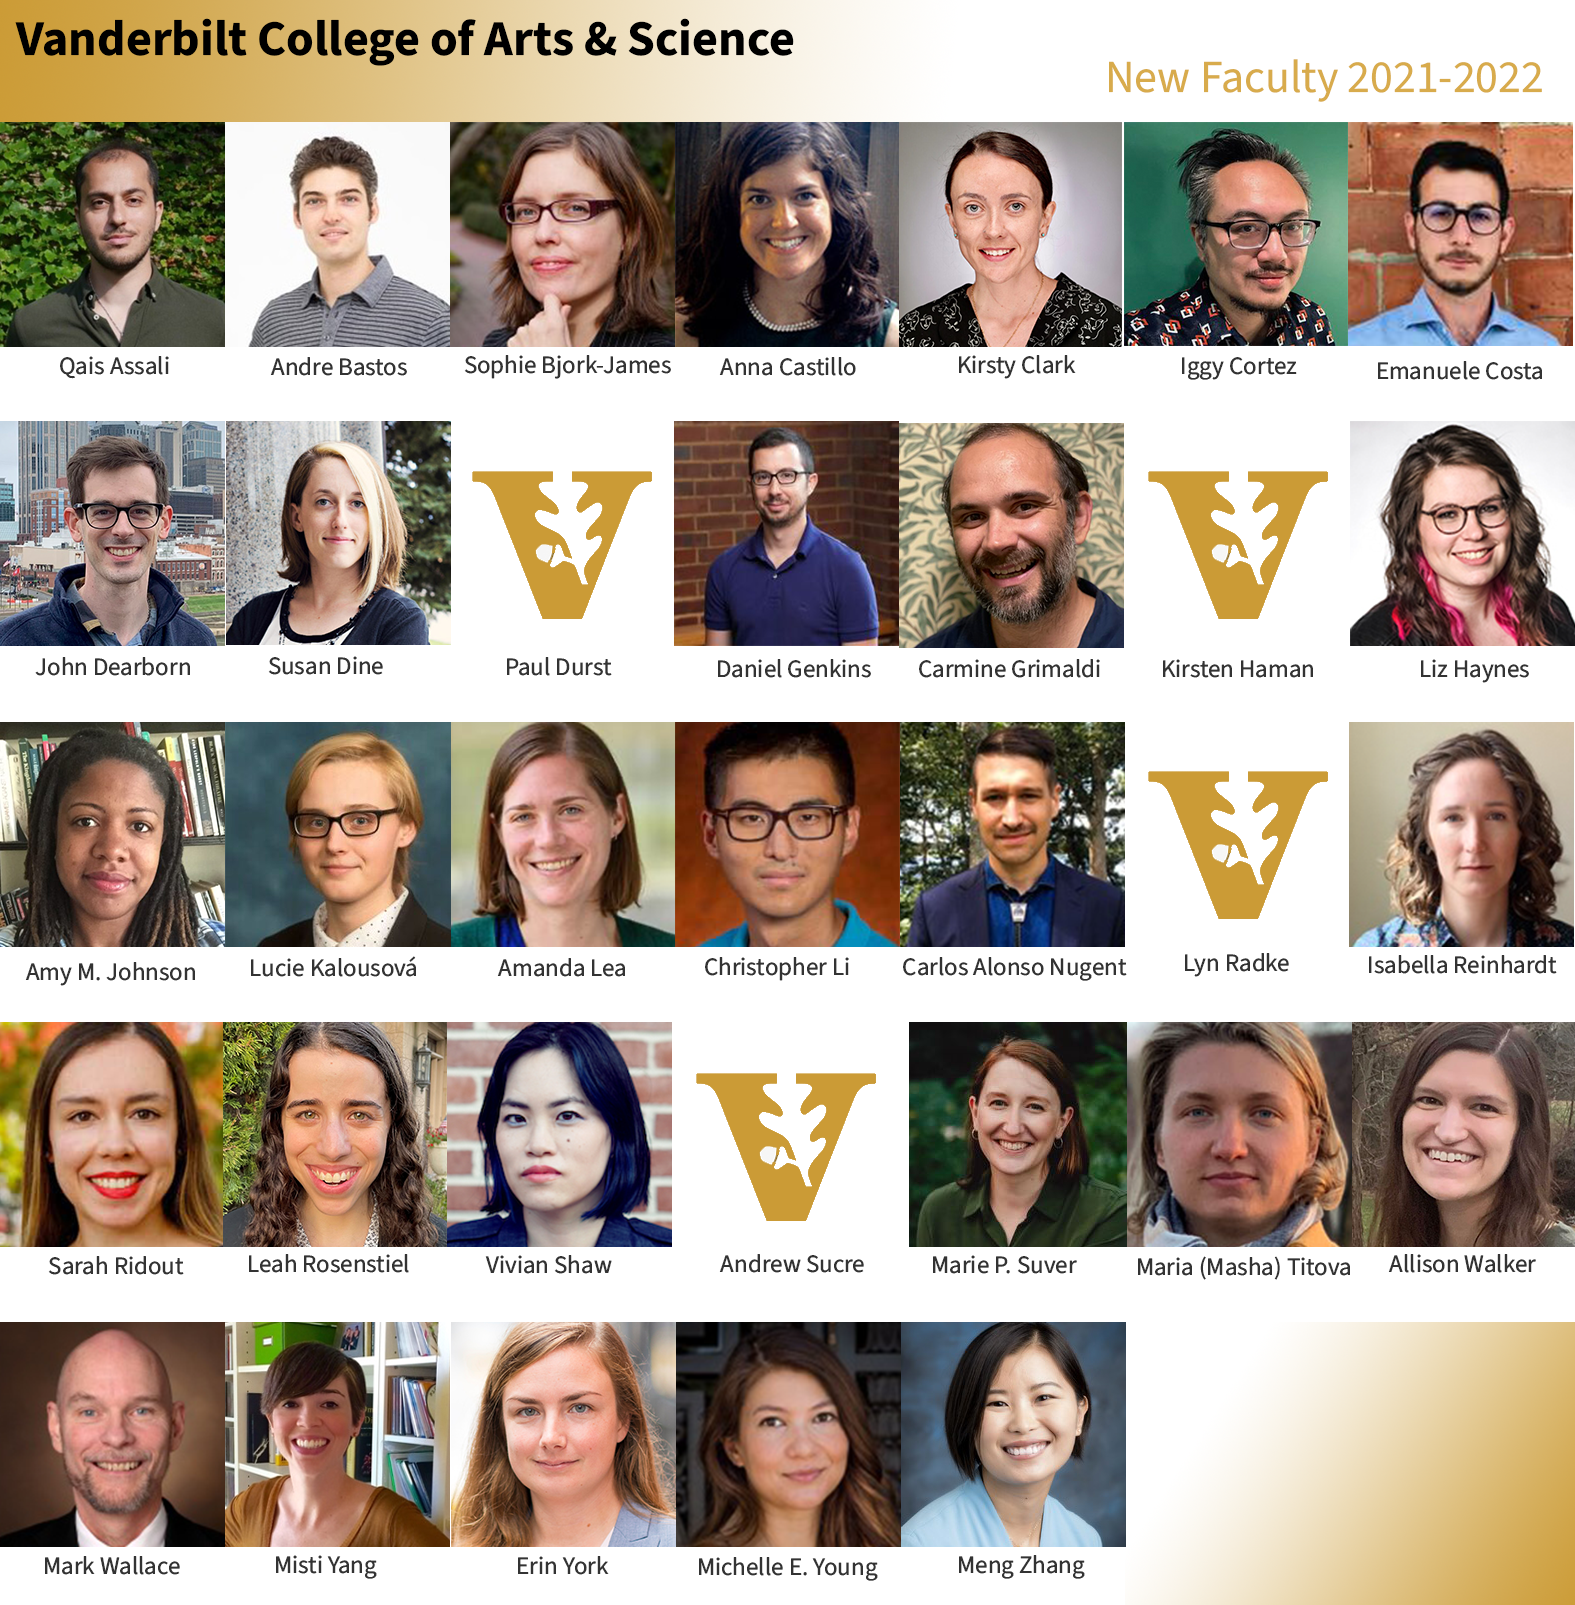 New Faculty 2021-2022